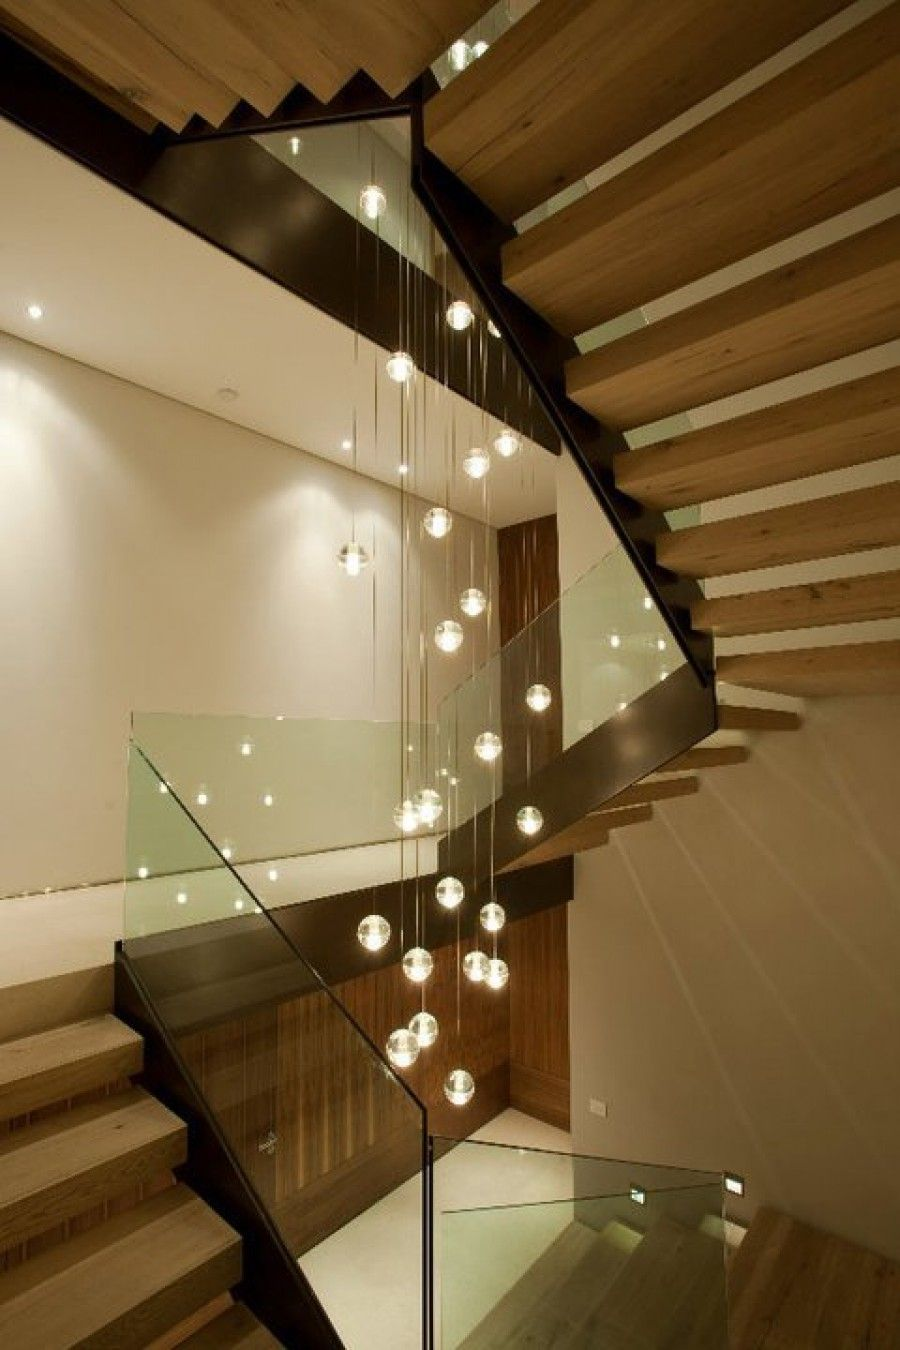 stair lighting. 15+ Stairway Lighting Ideas, Spectacular With Modern Interiors Tags : Basement Ideas Deck Stair Indoor